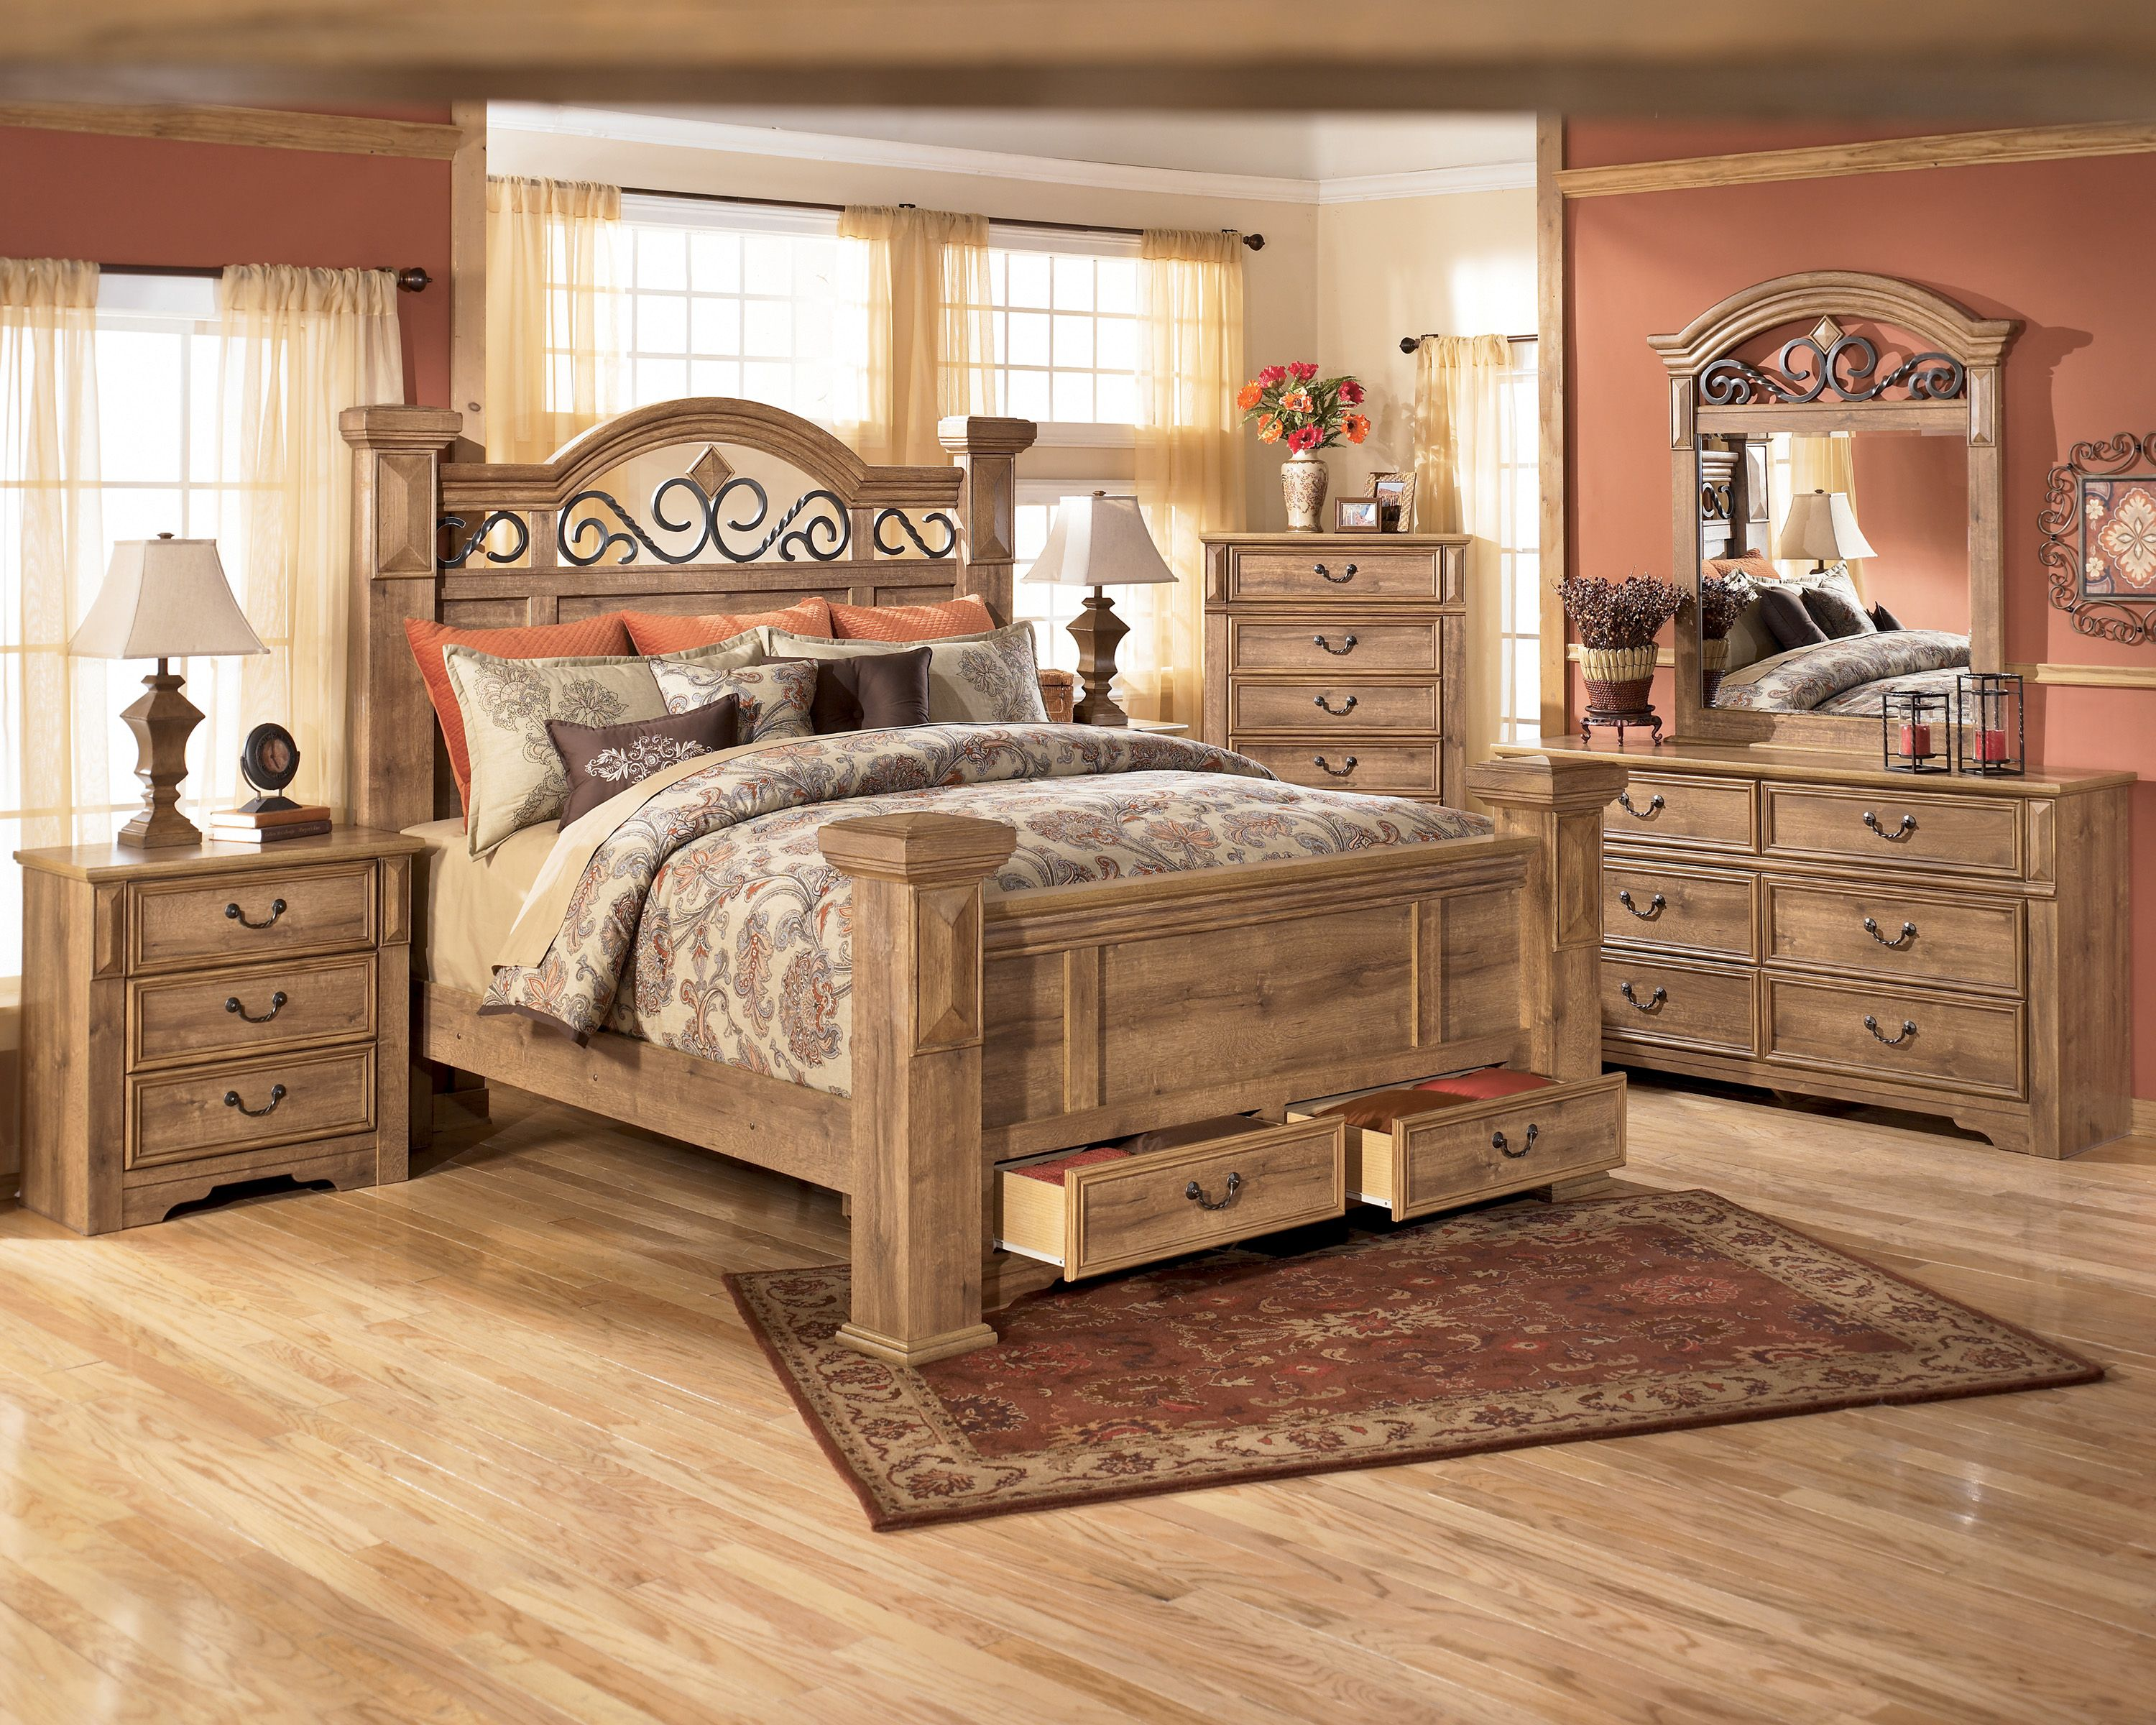 awesome Awesome Full Size Bed Set 89 On Home Decorating ...